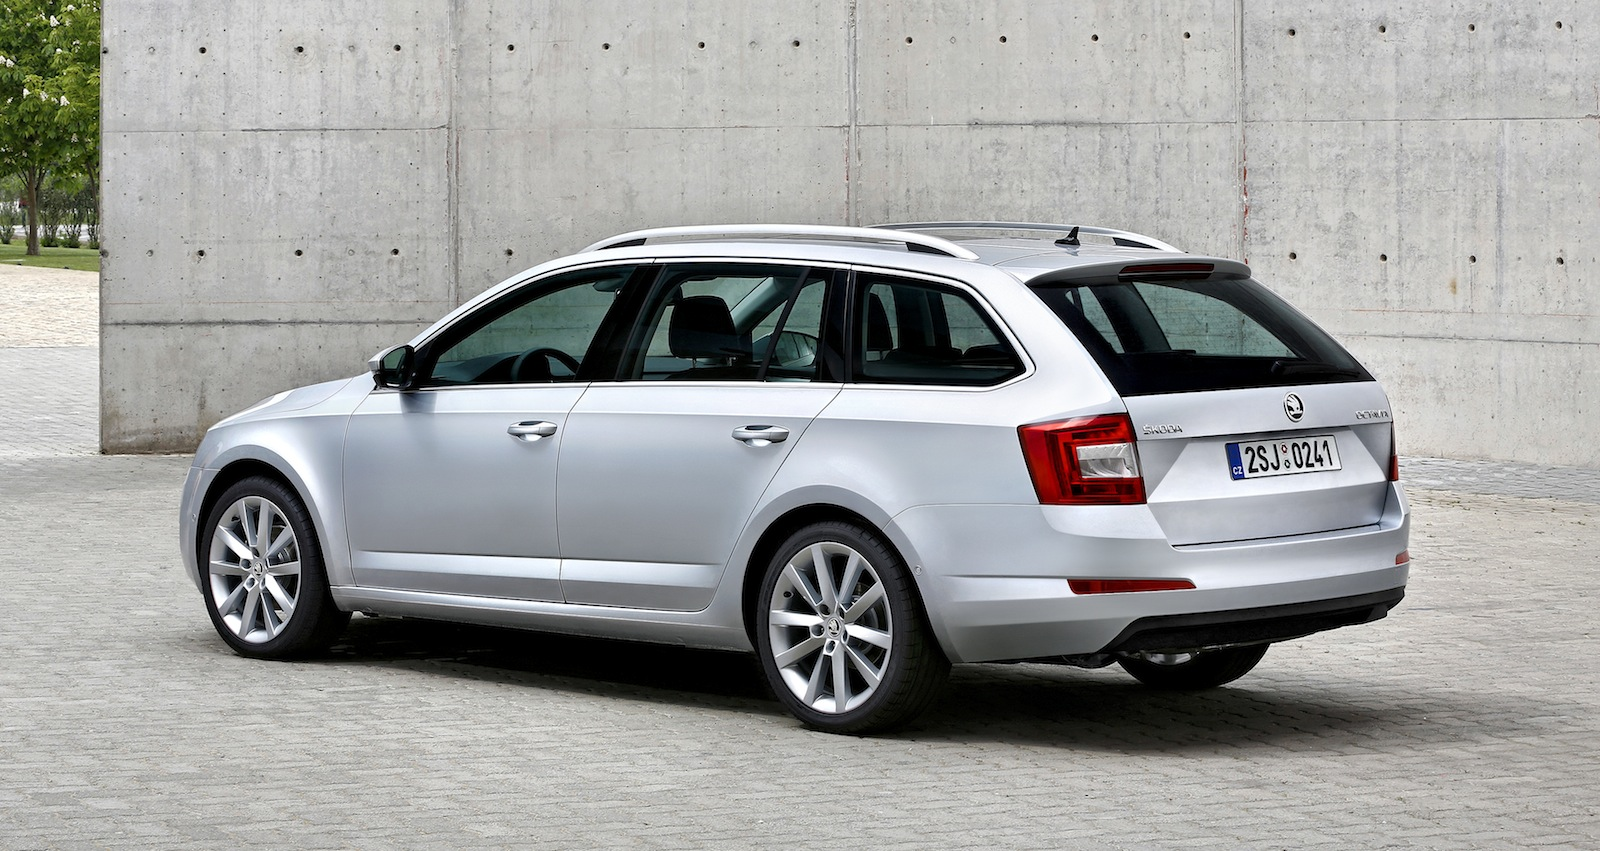 2013 skoda octavia wagon revealed photos 1 of 3. Black Bedroom Furniture Sets. Home Design Ideas